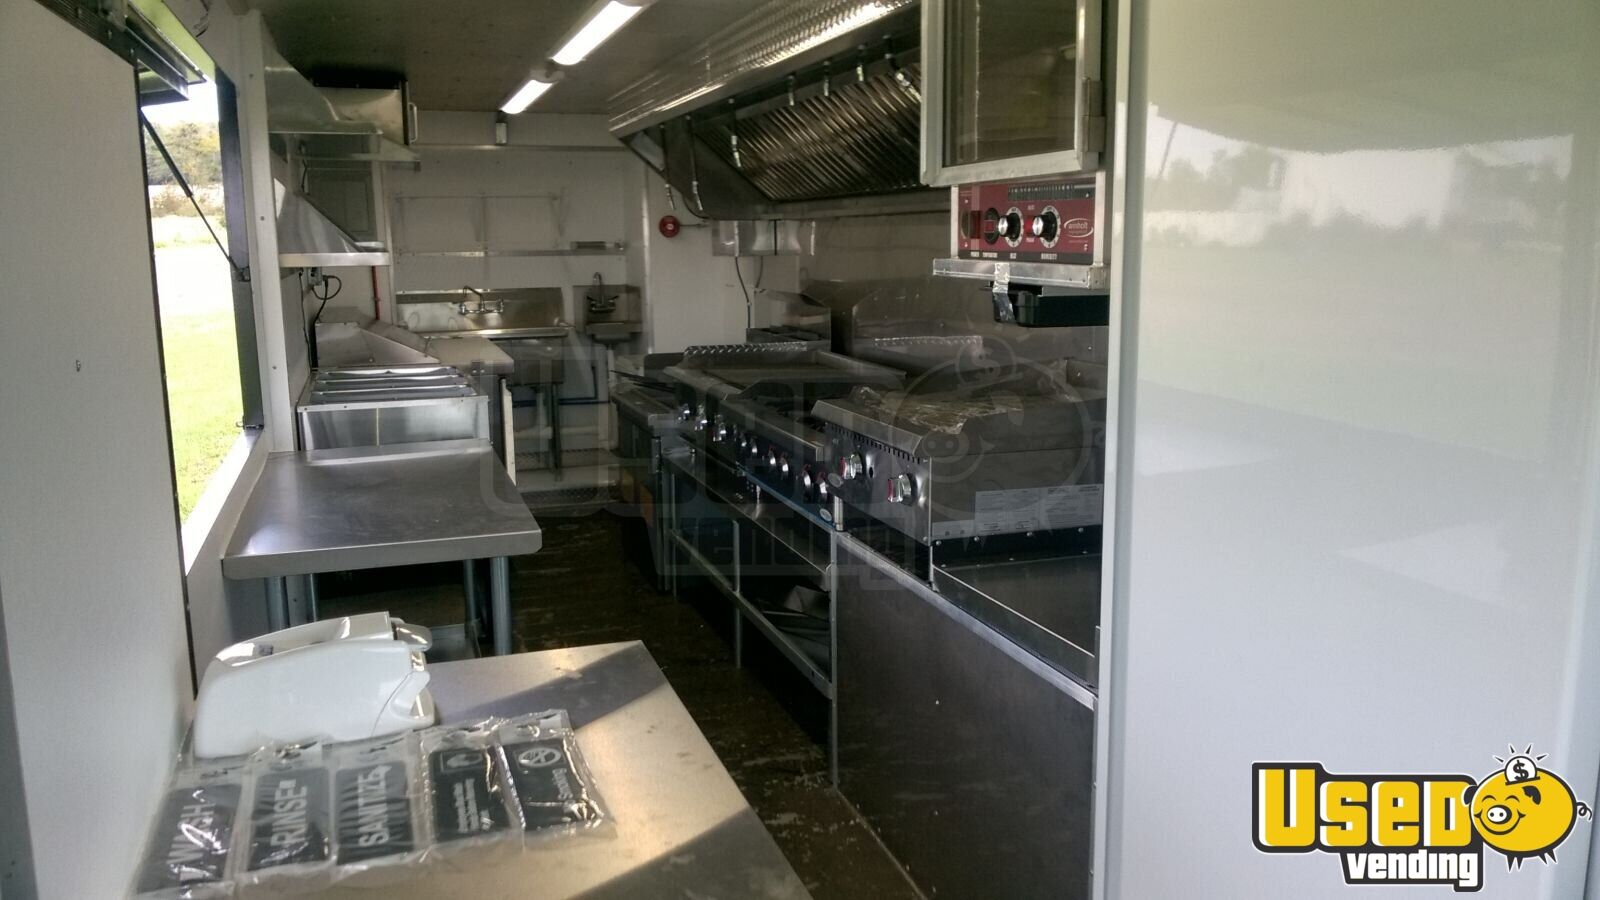 Food Truck Exterior Customer Counter Ohio Gas Engine for Sale - 6